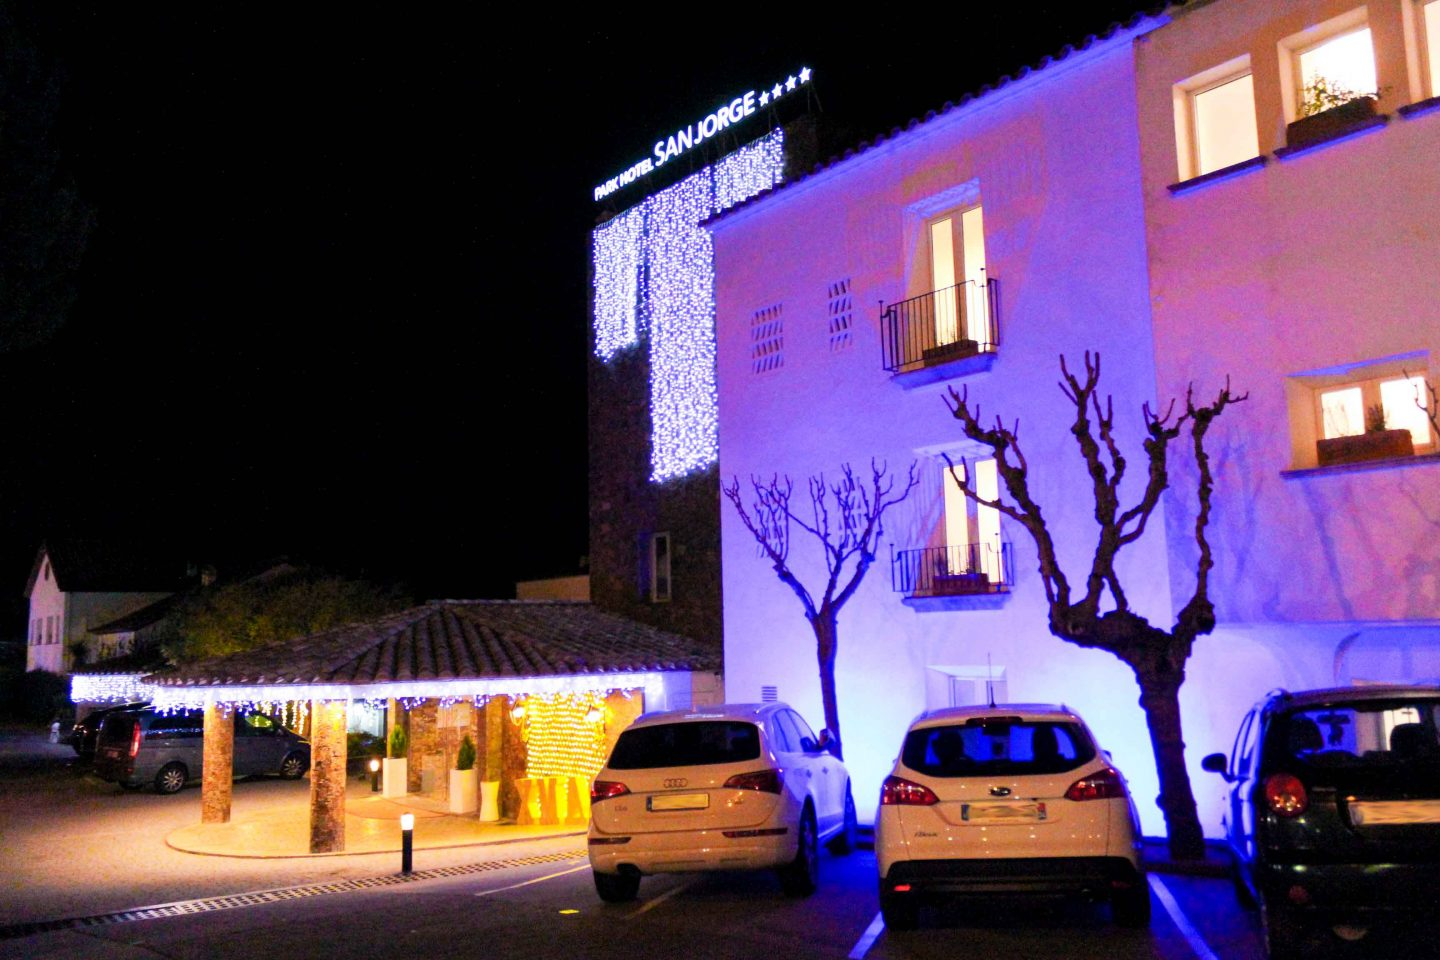 silken-park-hotel-san-jorge-38-accommodations